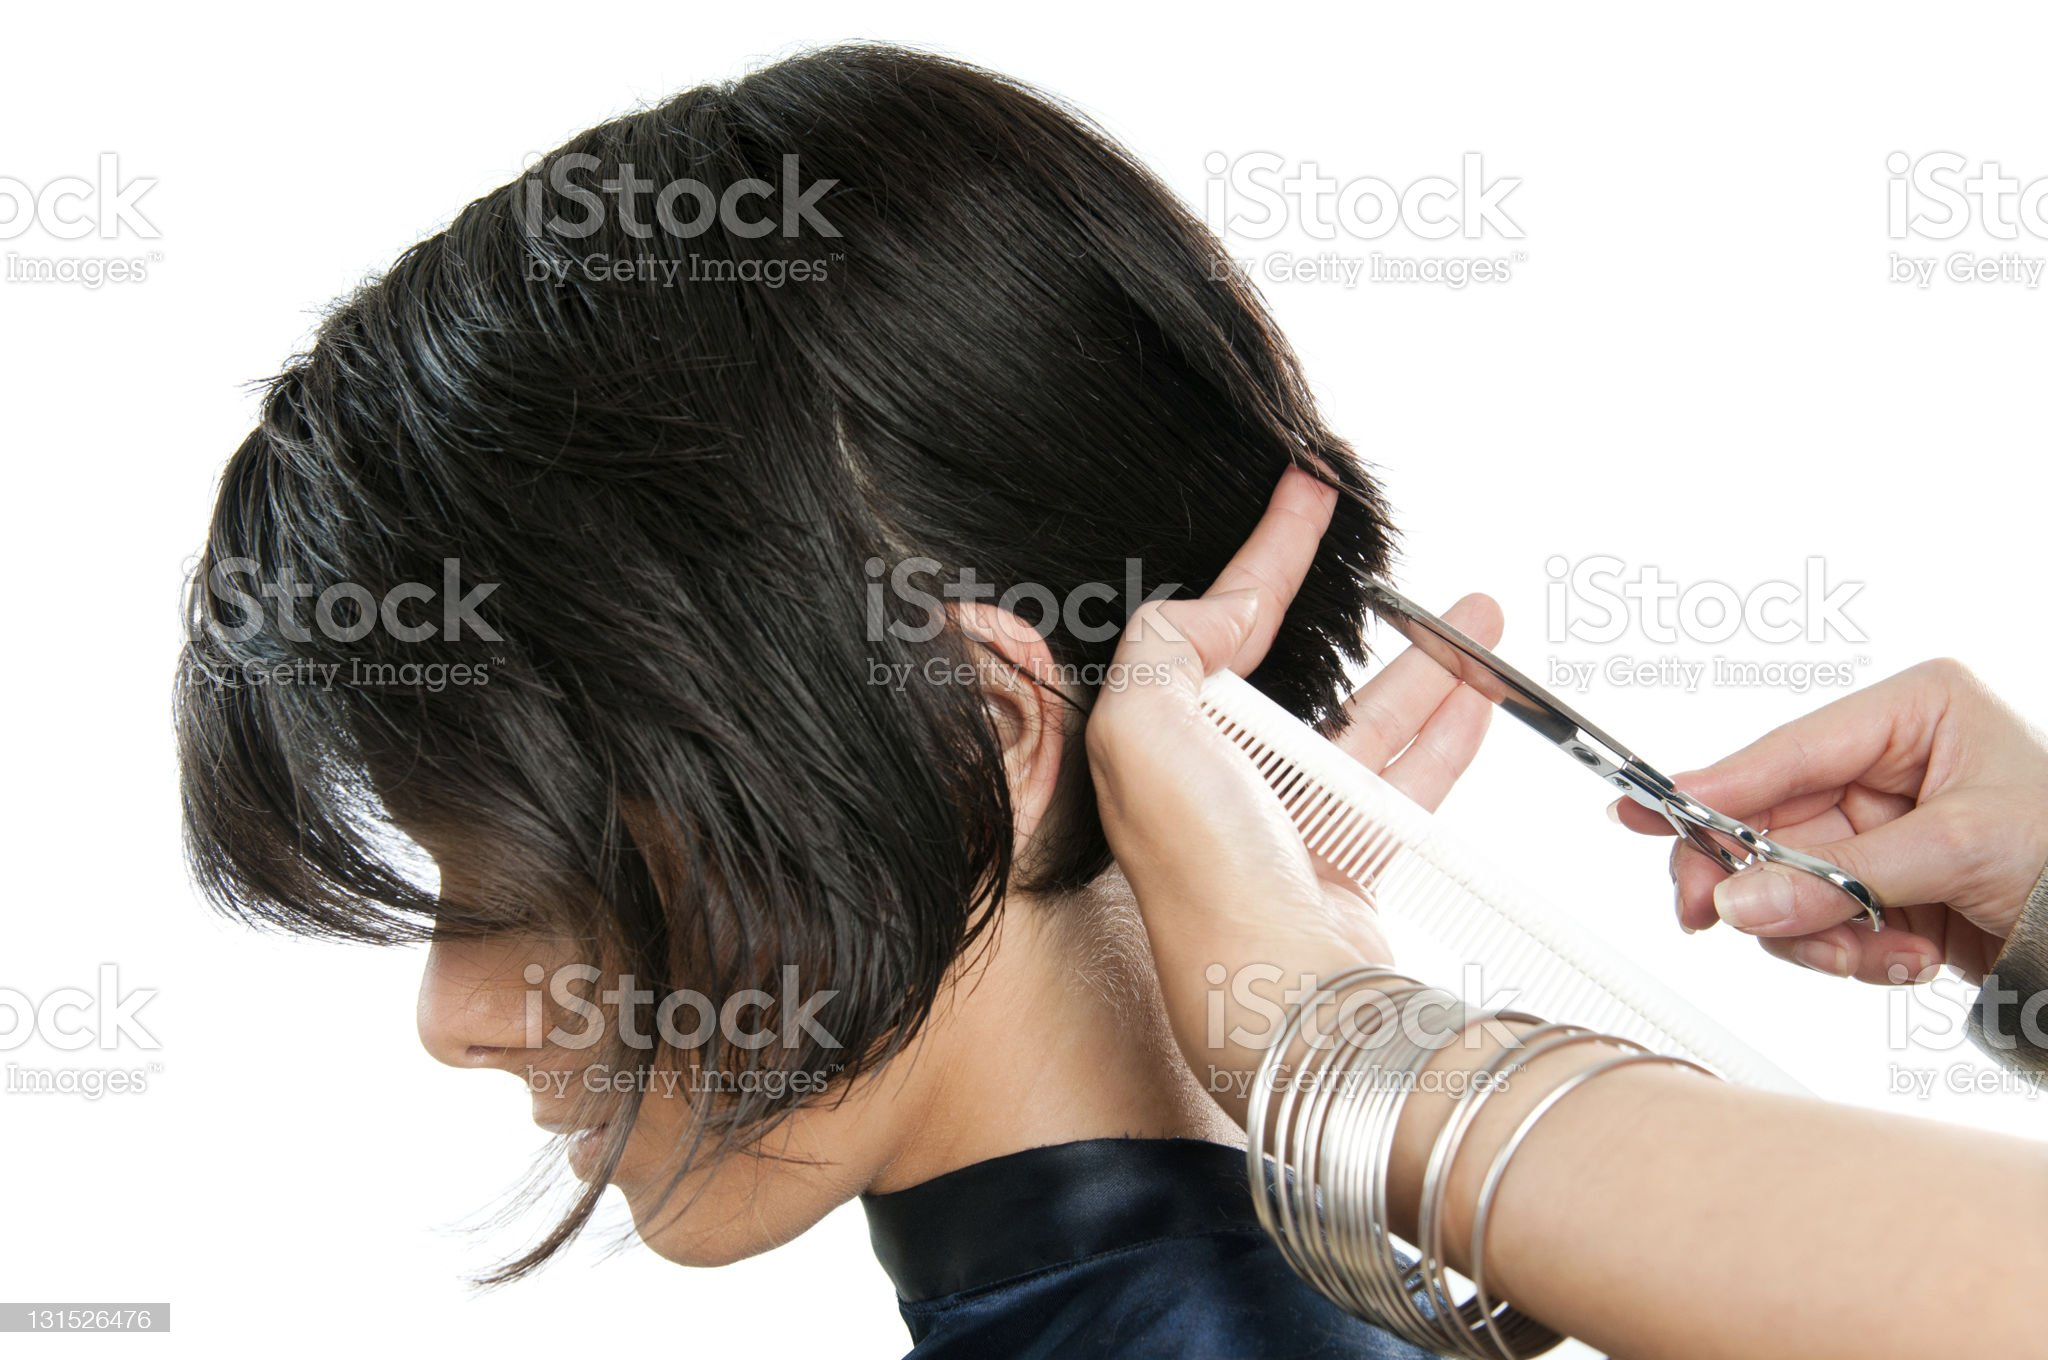 A hairdresser cutting the woman's hair royalty-free stock photo